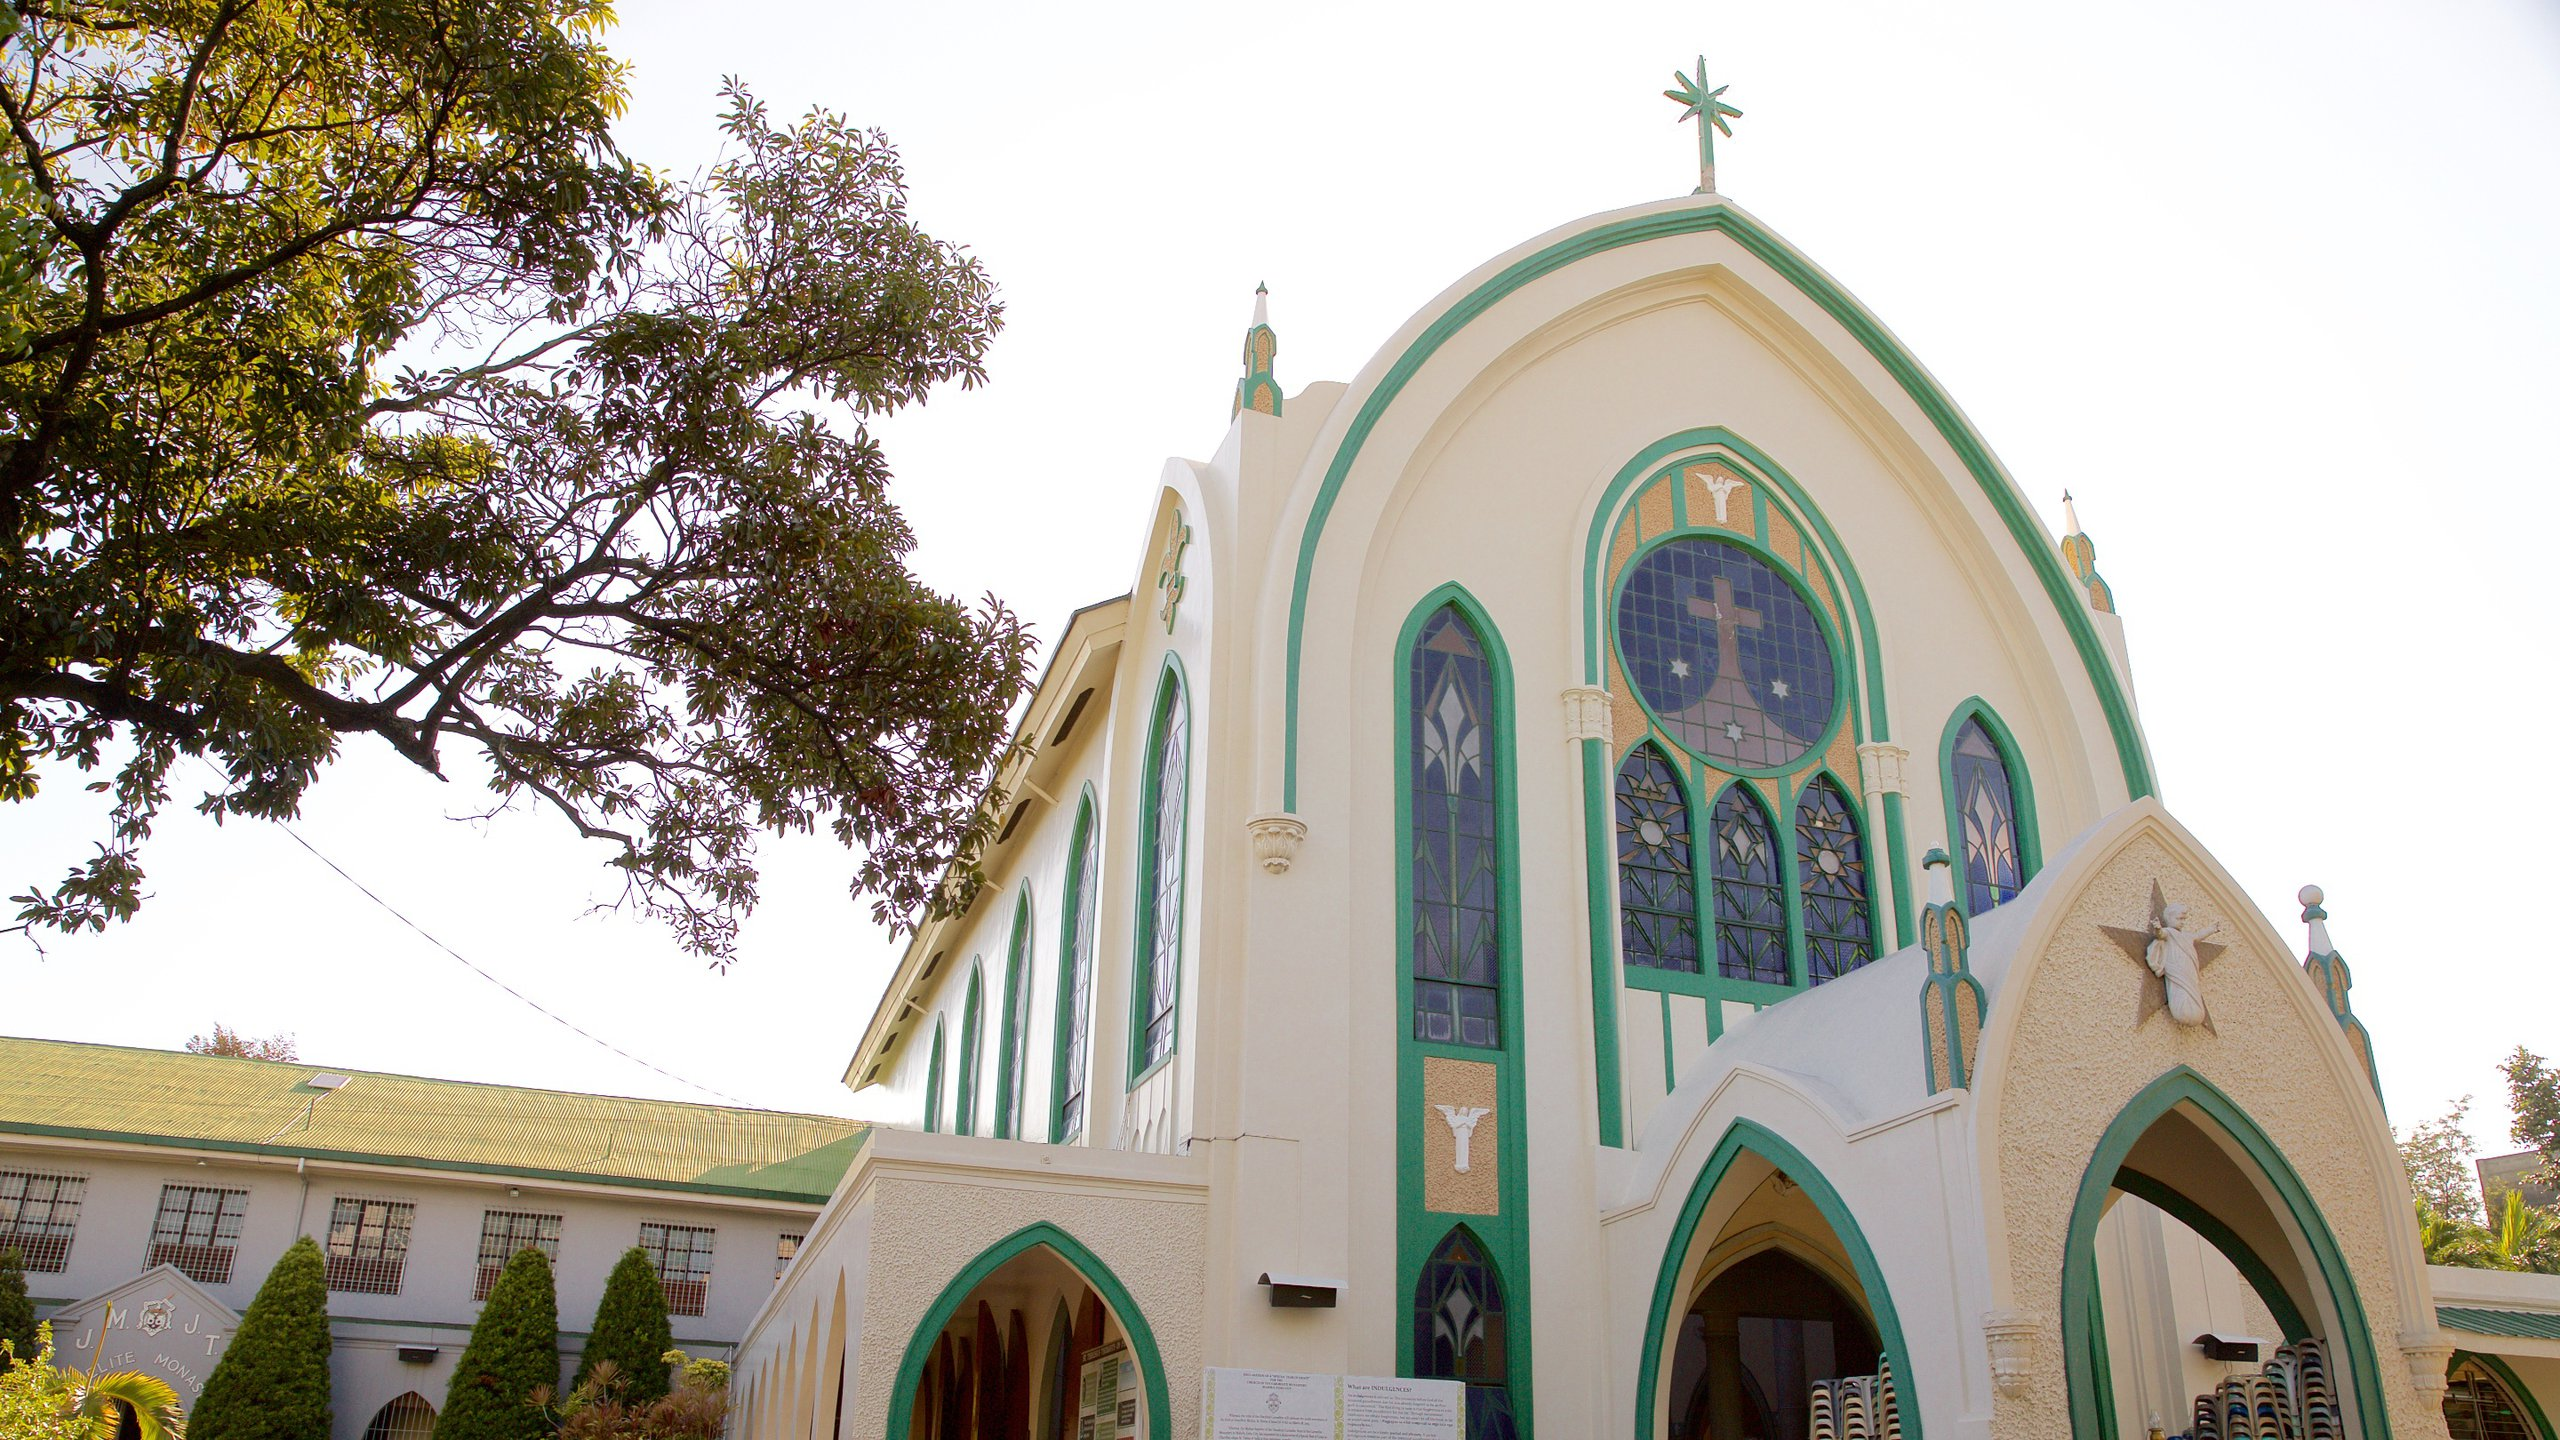 10 Best Hotels Closest to Carmelite Monastery in Mabolo for 2019